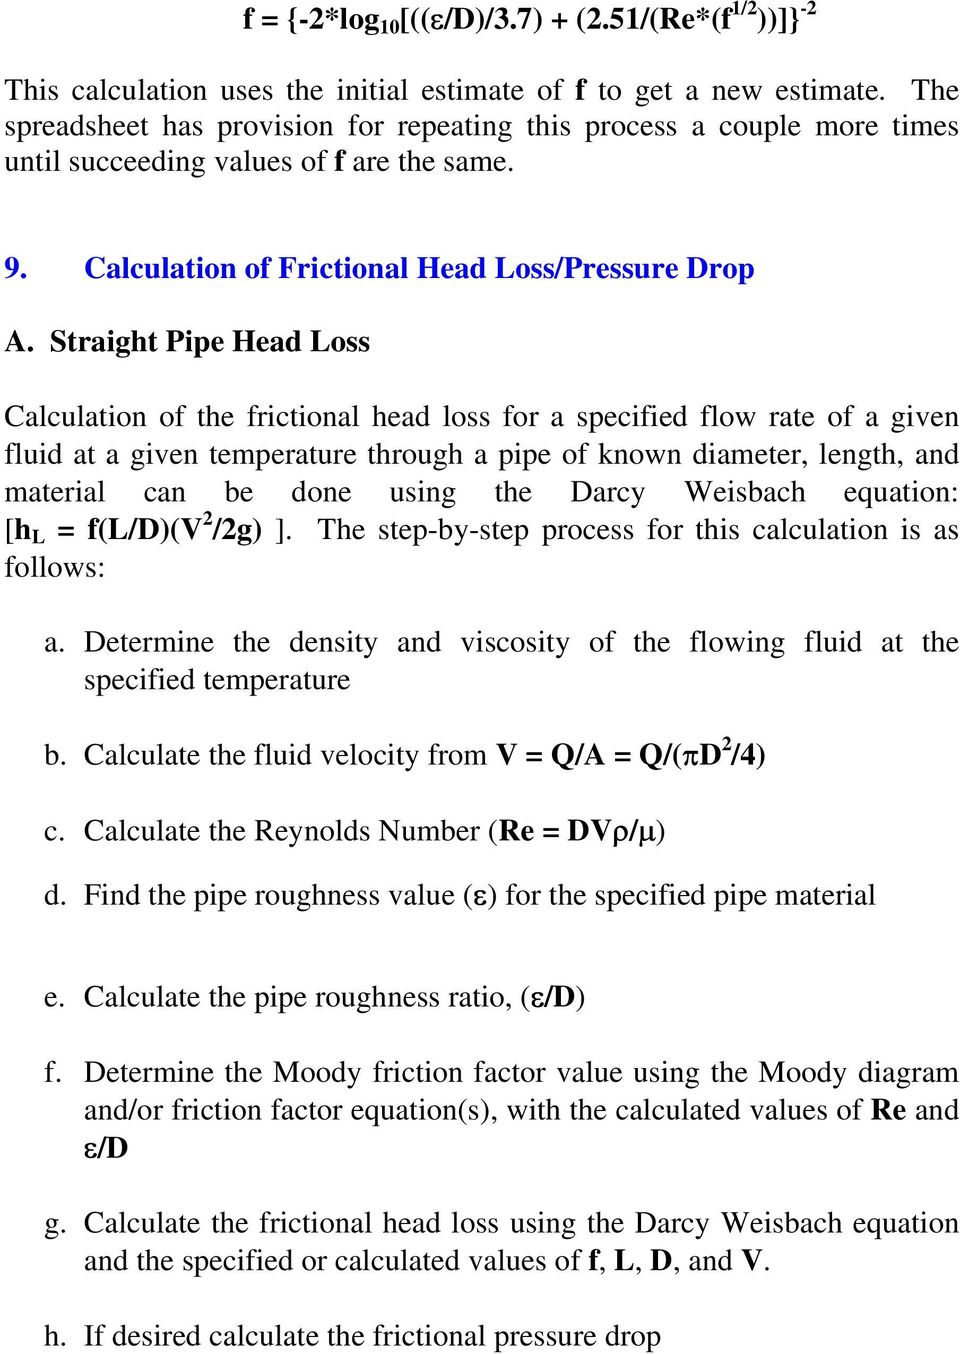 Pipe Friction Loss Calculator Free Download